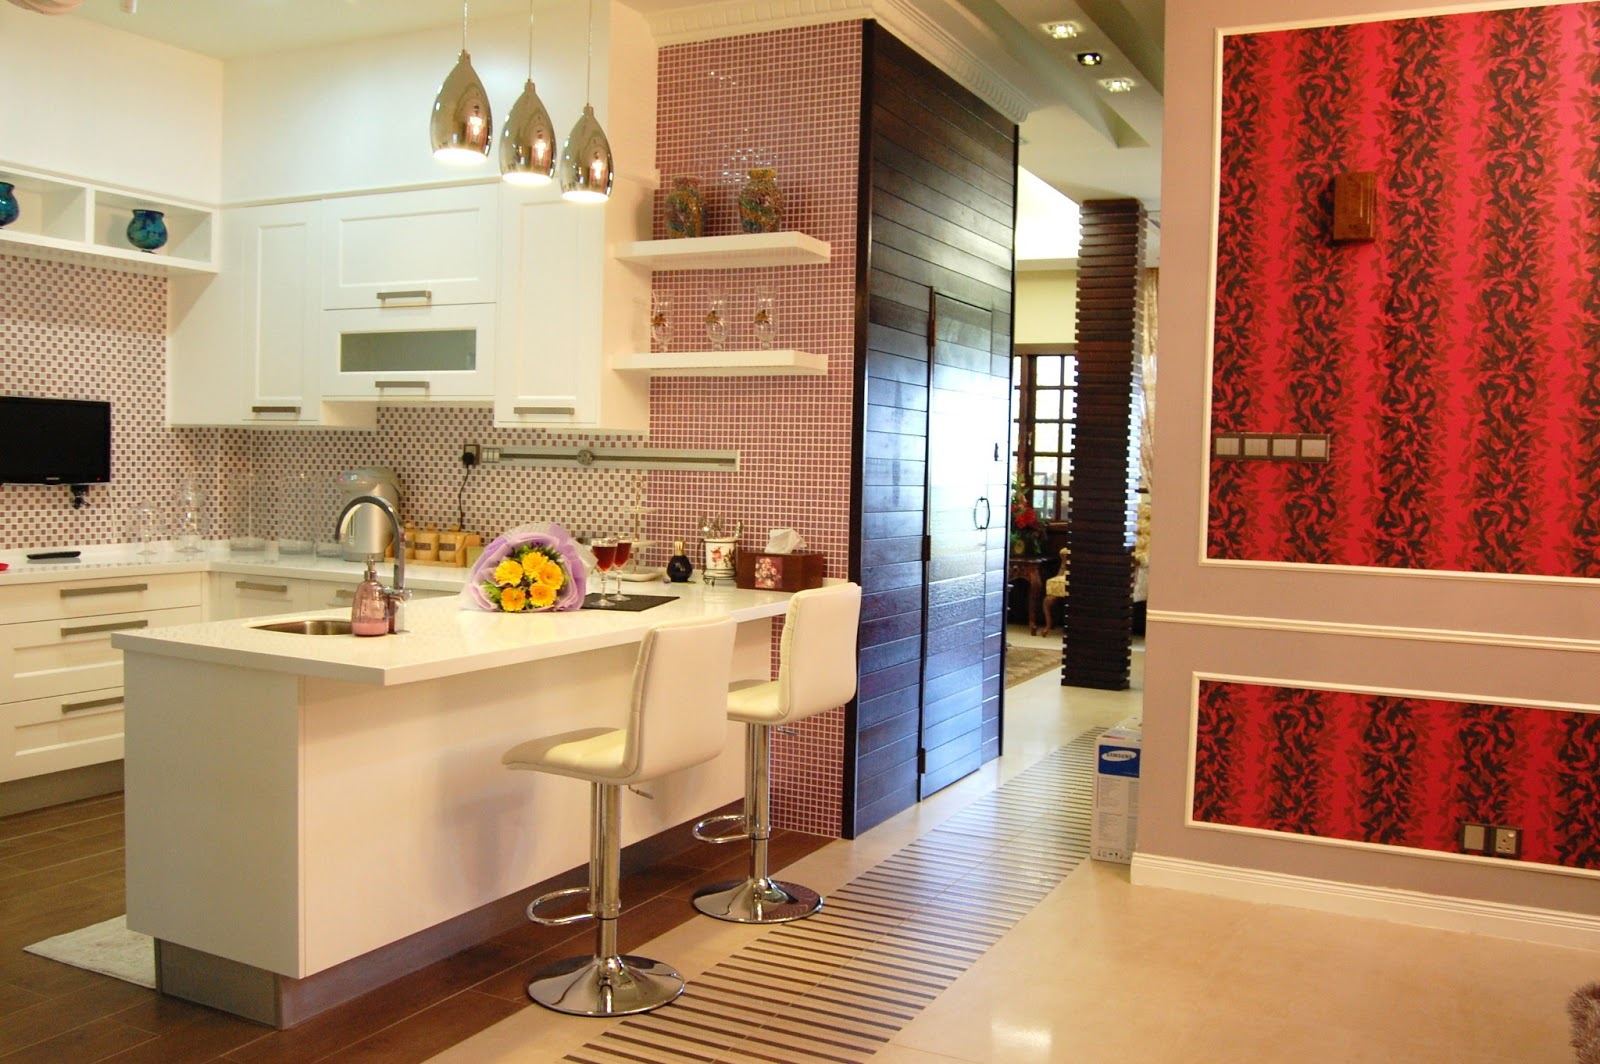 Kitchen Design Malaysia meridian design - kitchen cabinet and interior design blog-malaysia